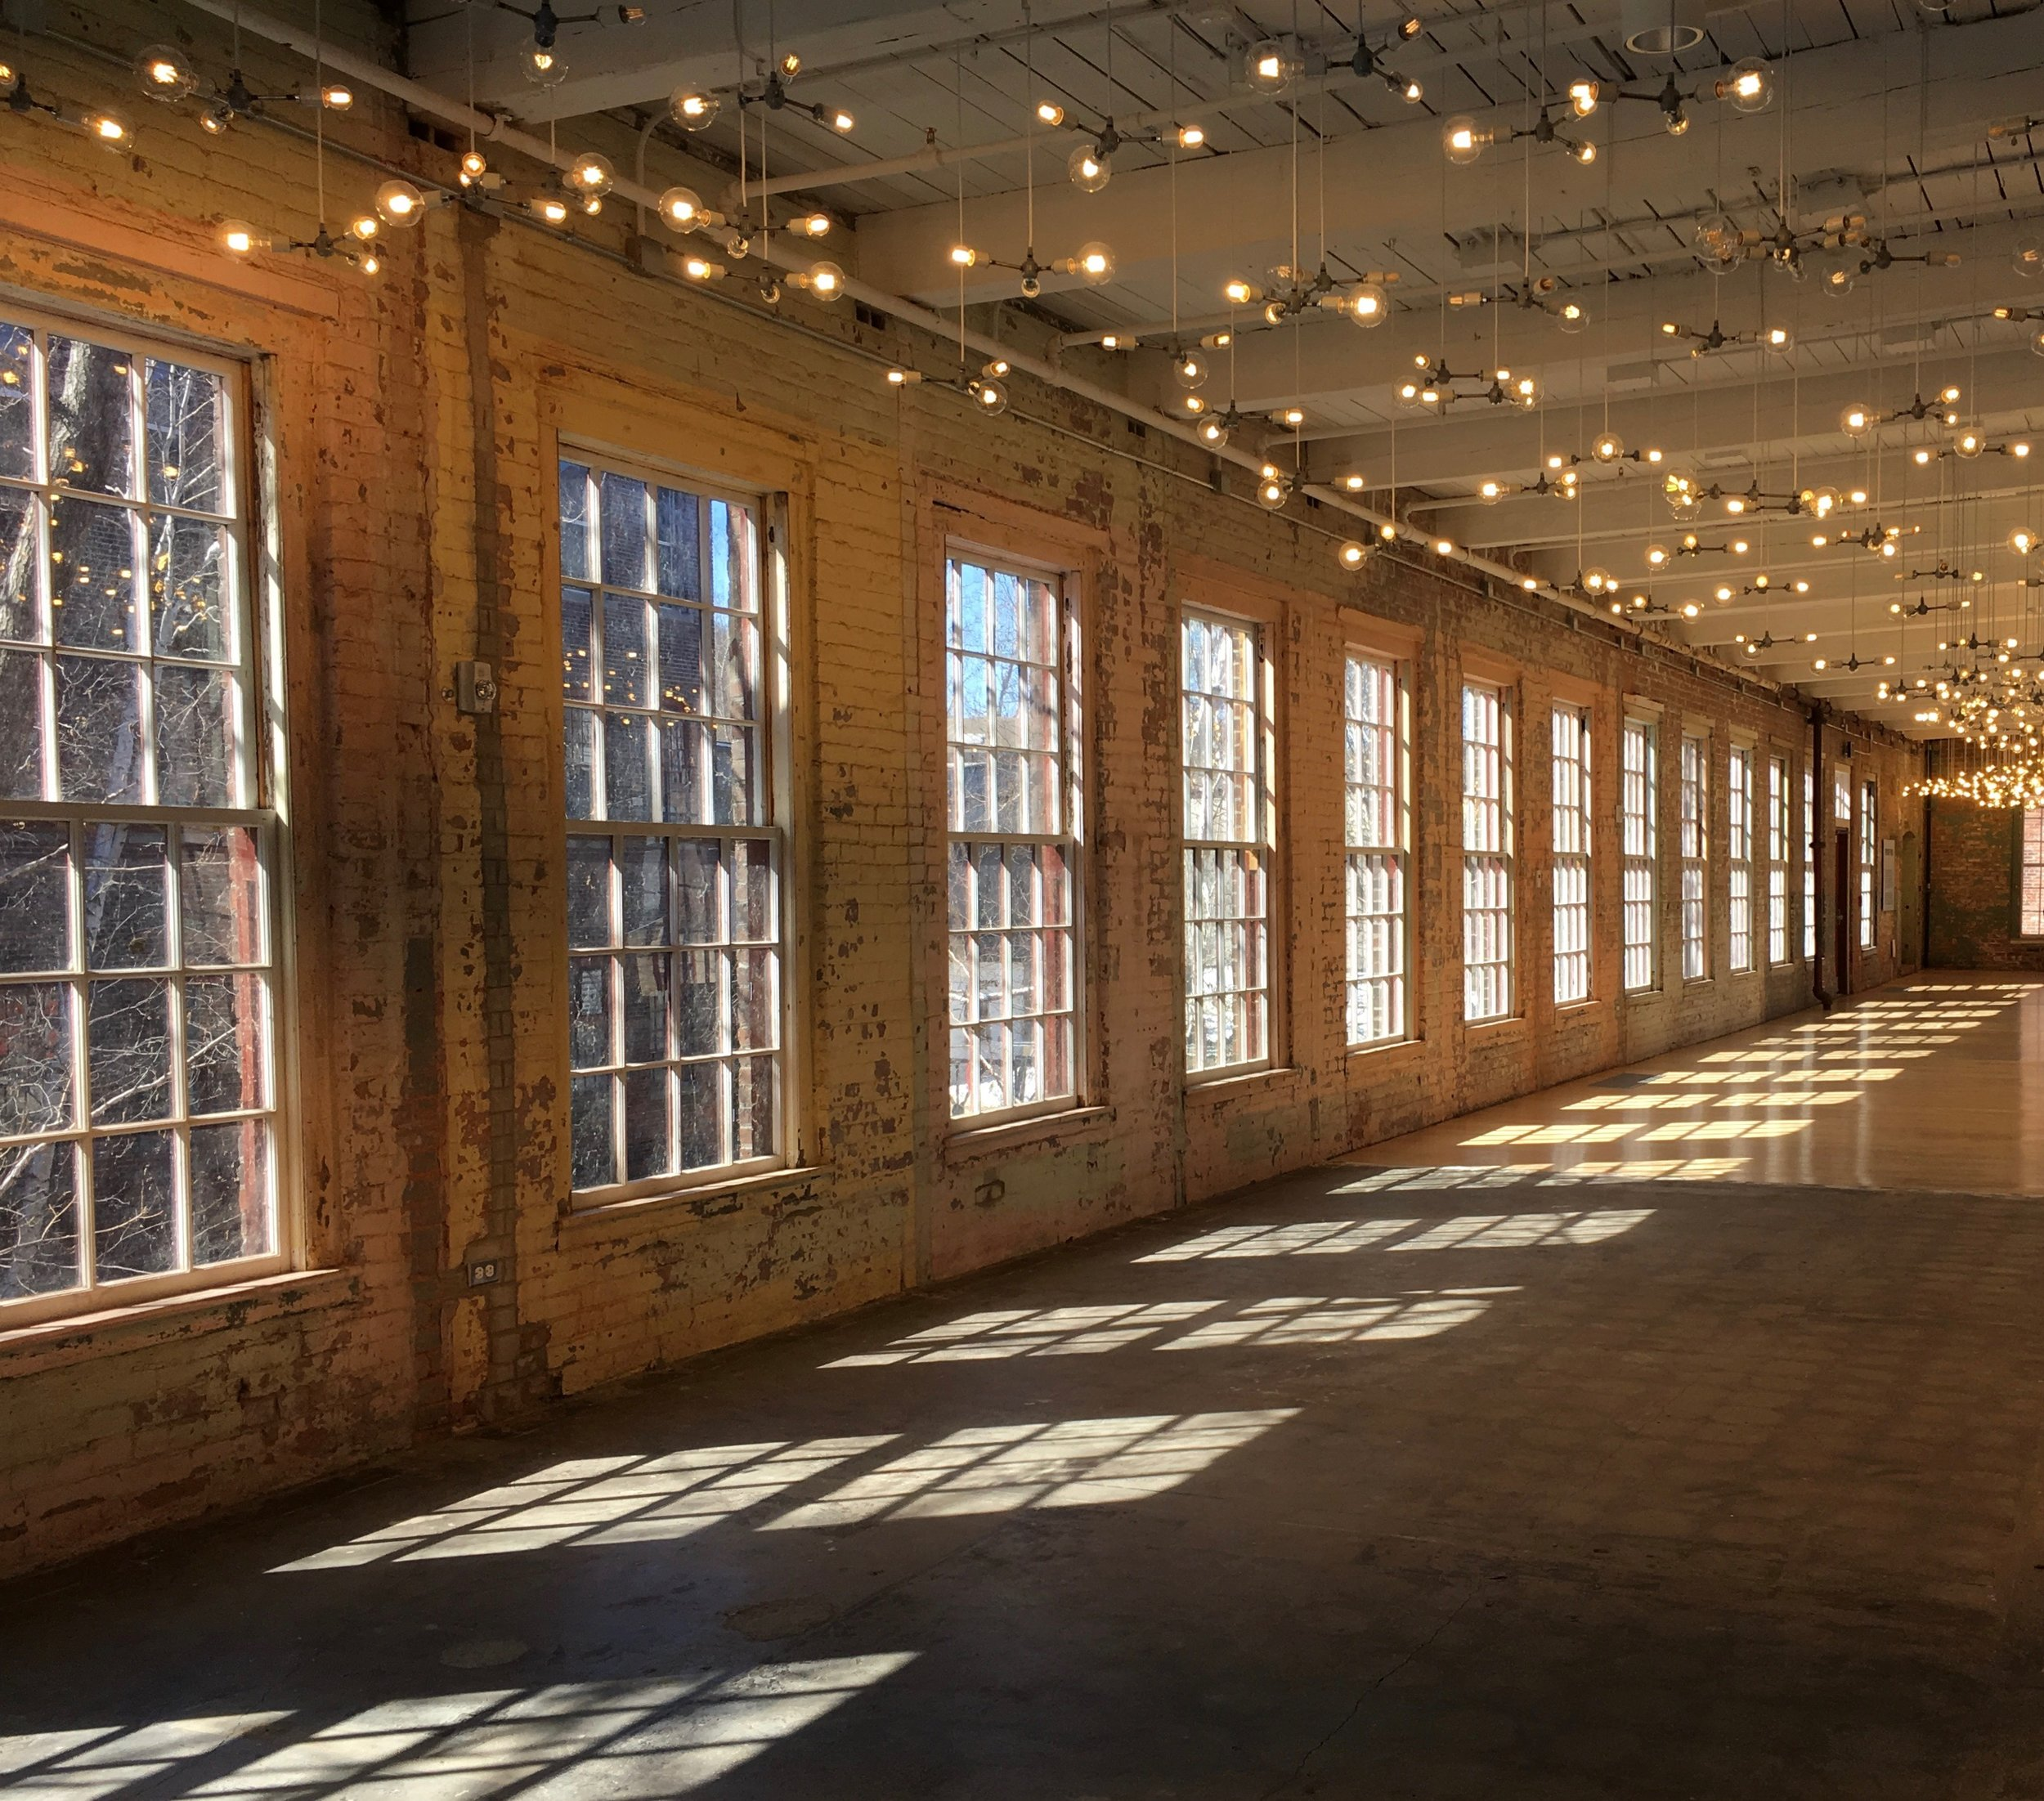 Spencer Finch,  Cosmic Latte  (lighting installation), Mass MoCA, North Adams, Mass. Photo: Christine Cipriani